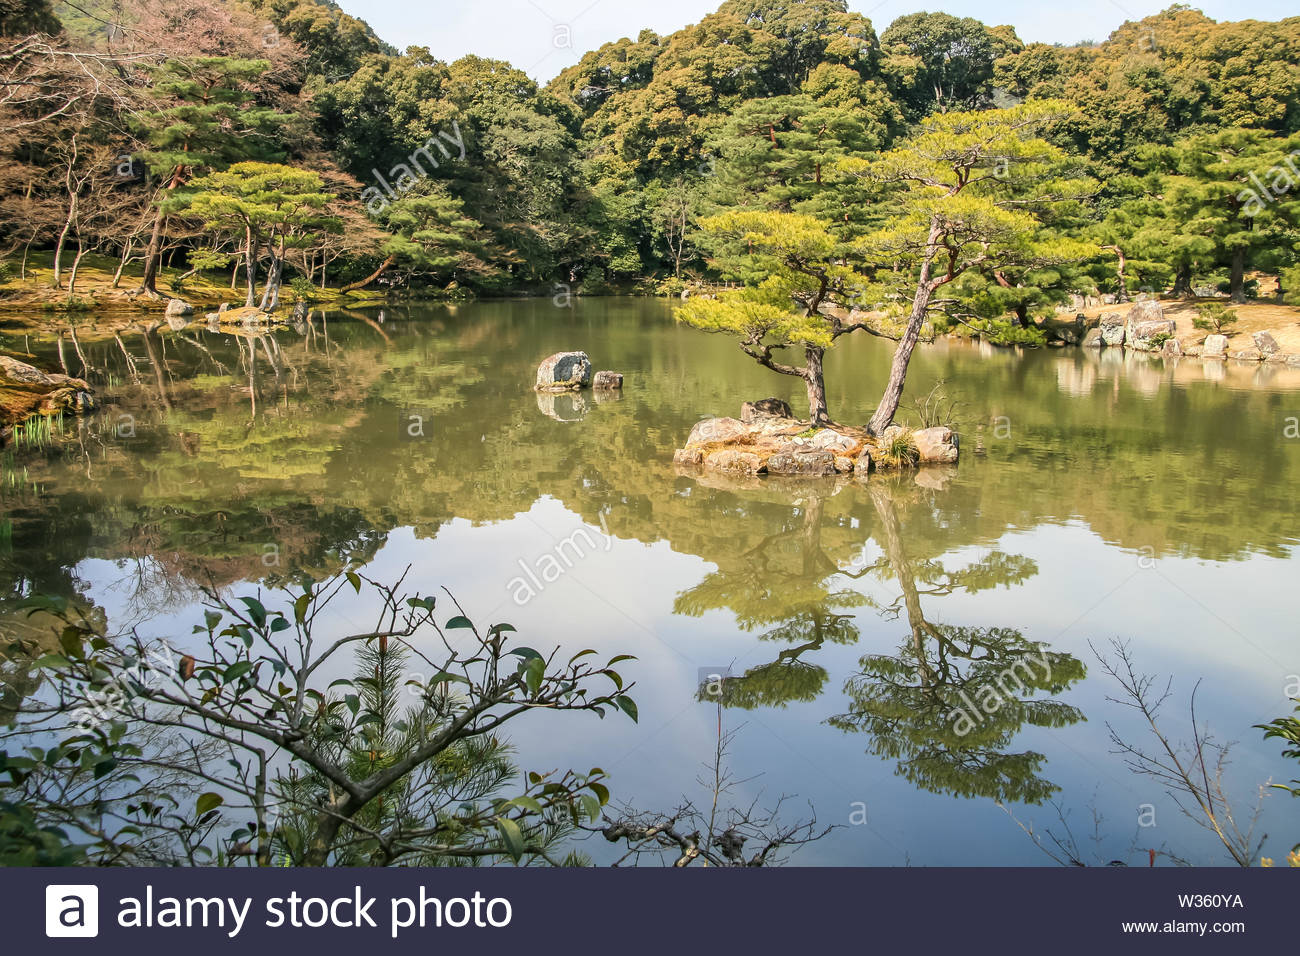 japanese feng shui garden with lake and bonsai trees which radiates a lot of silence W360YA